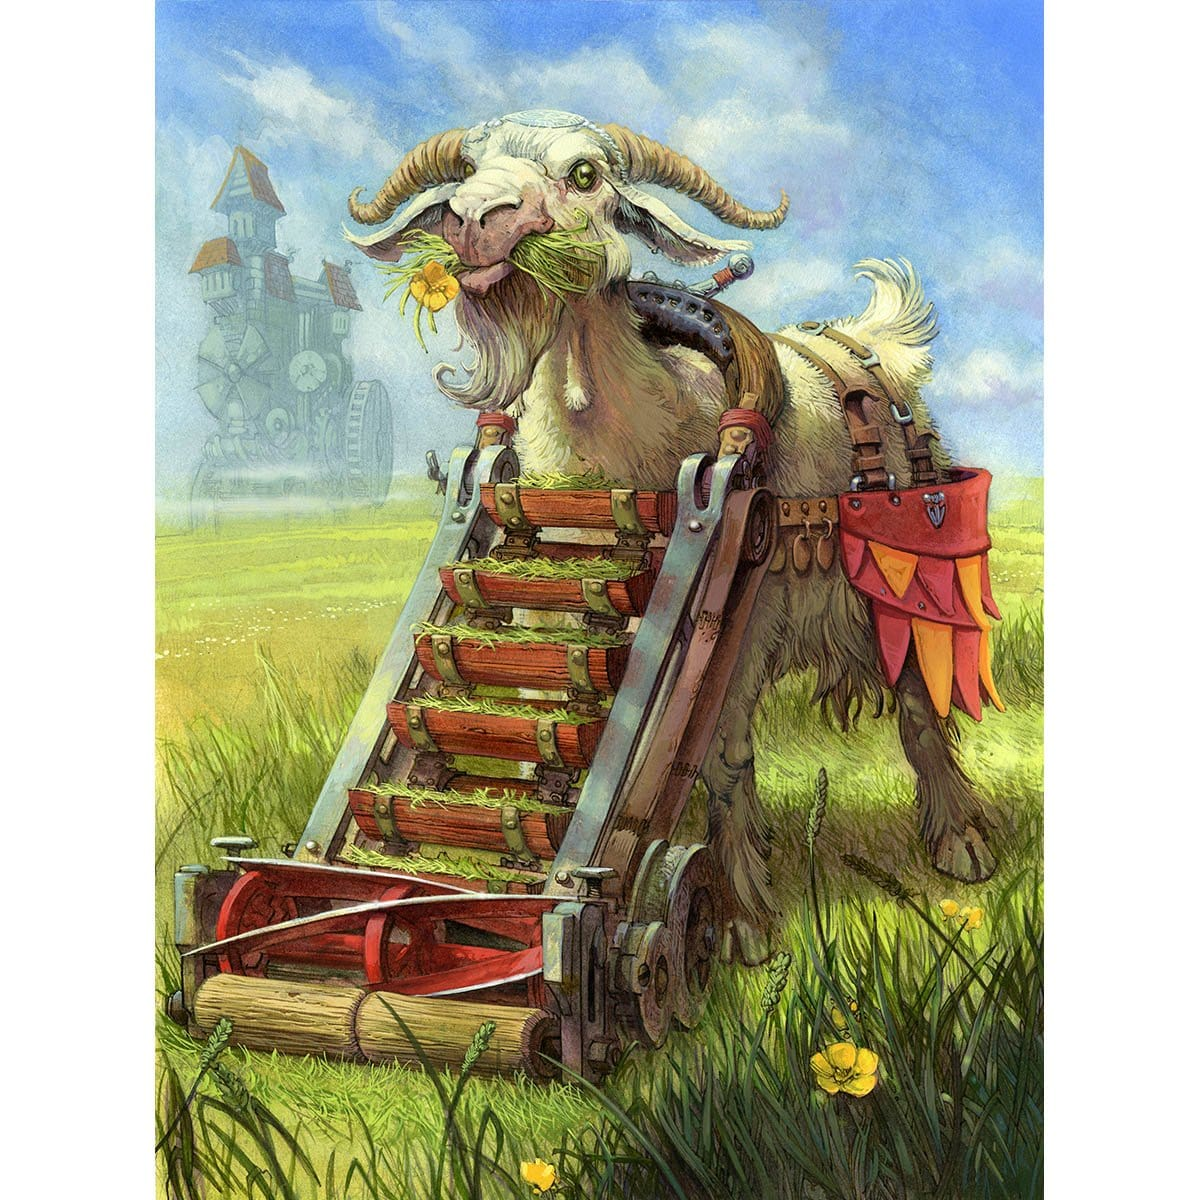 Goat Token Print - Print - Original Magic Art - Accessories for Magic the Gathering and other card games